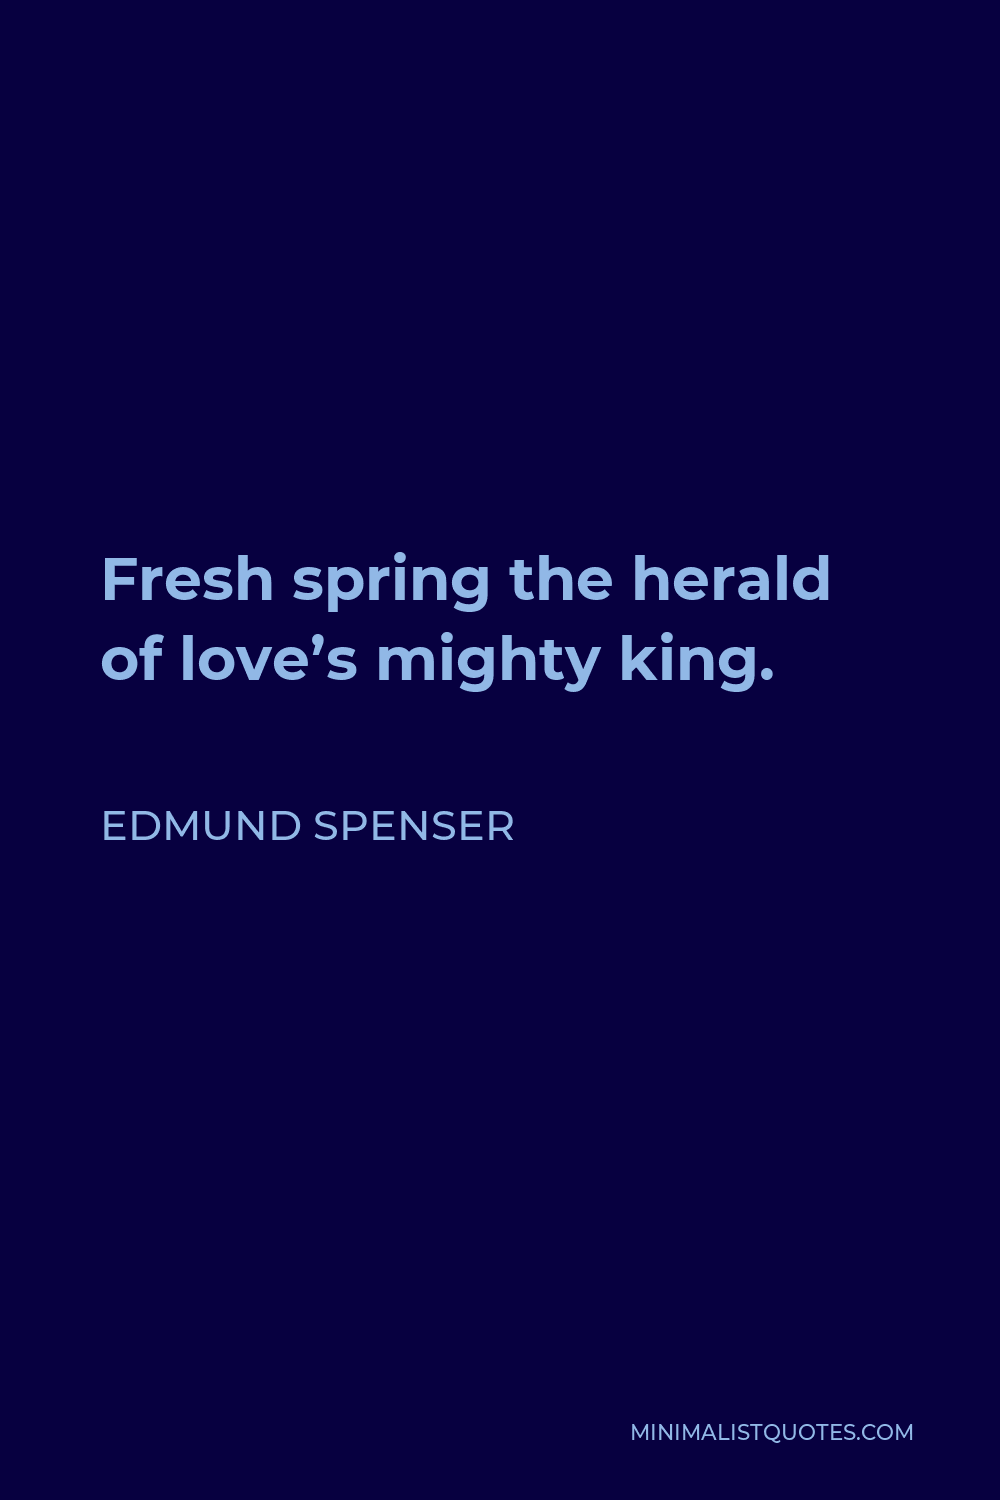 Edmund Spenser Quote - Fresh spring the herald of love's mighty king.